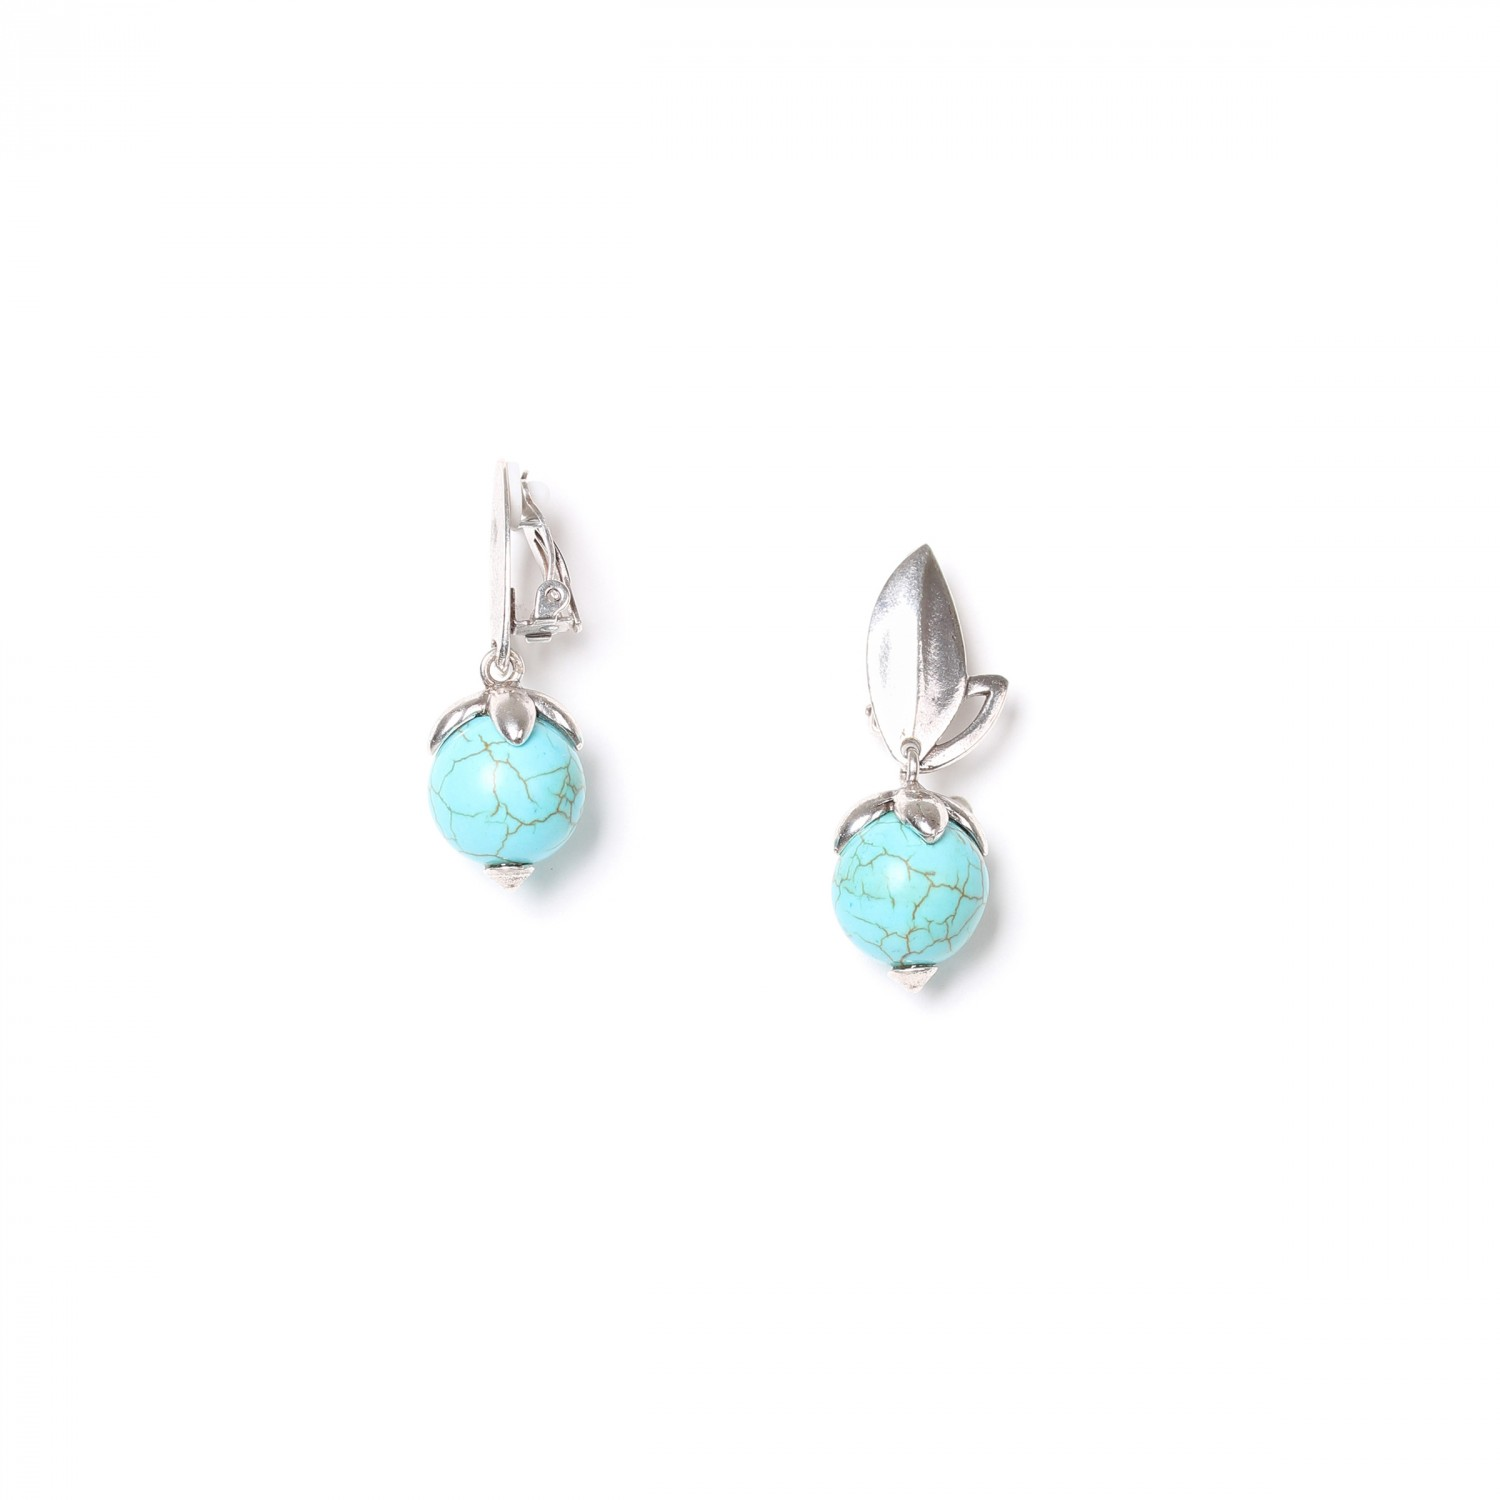 LES FRUITS clips howlite turquoise